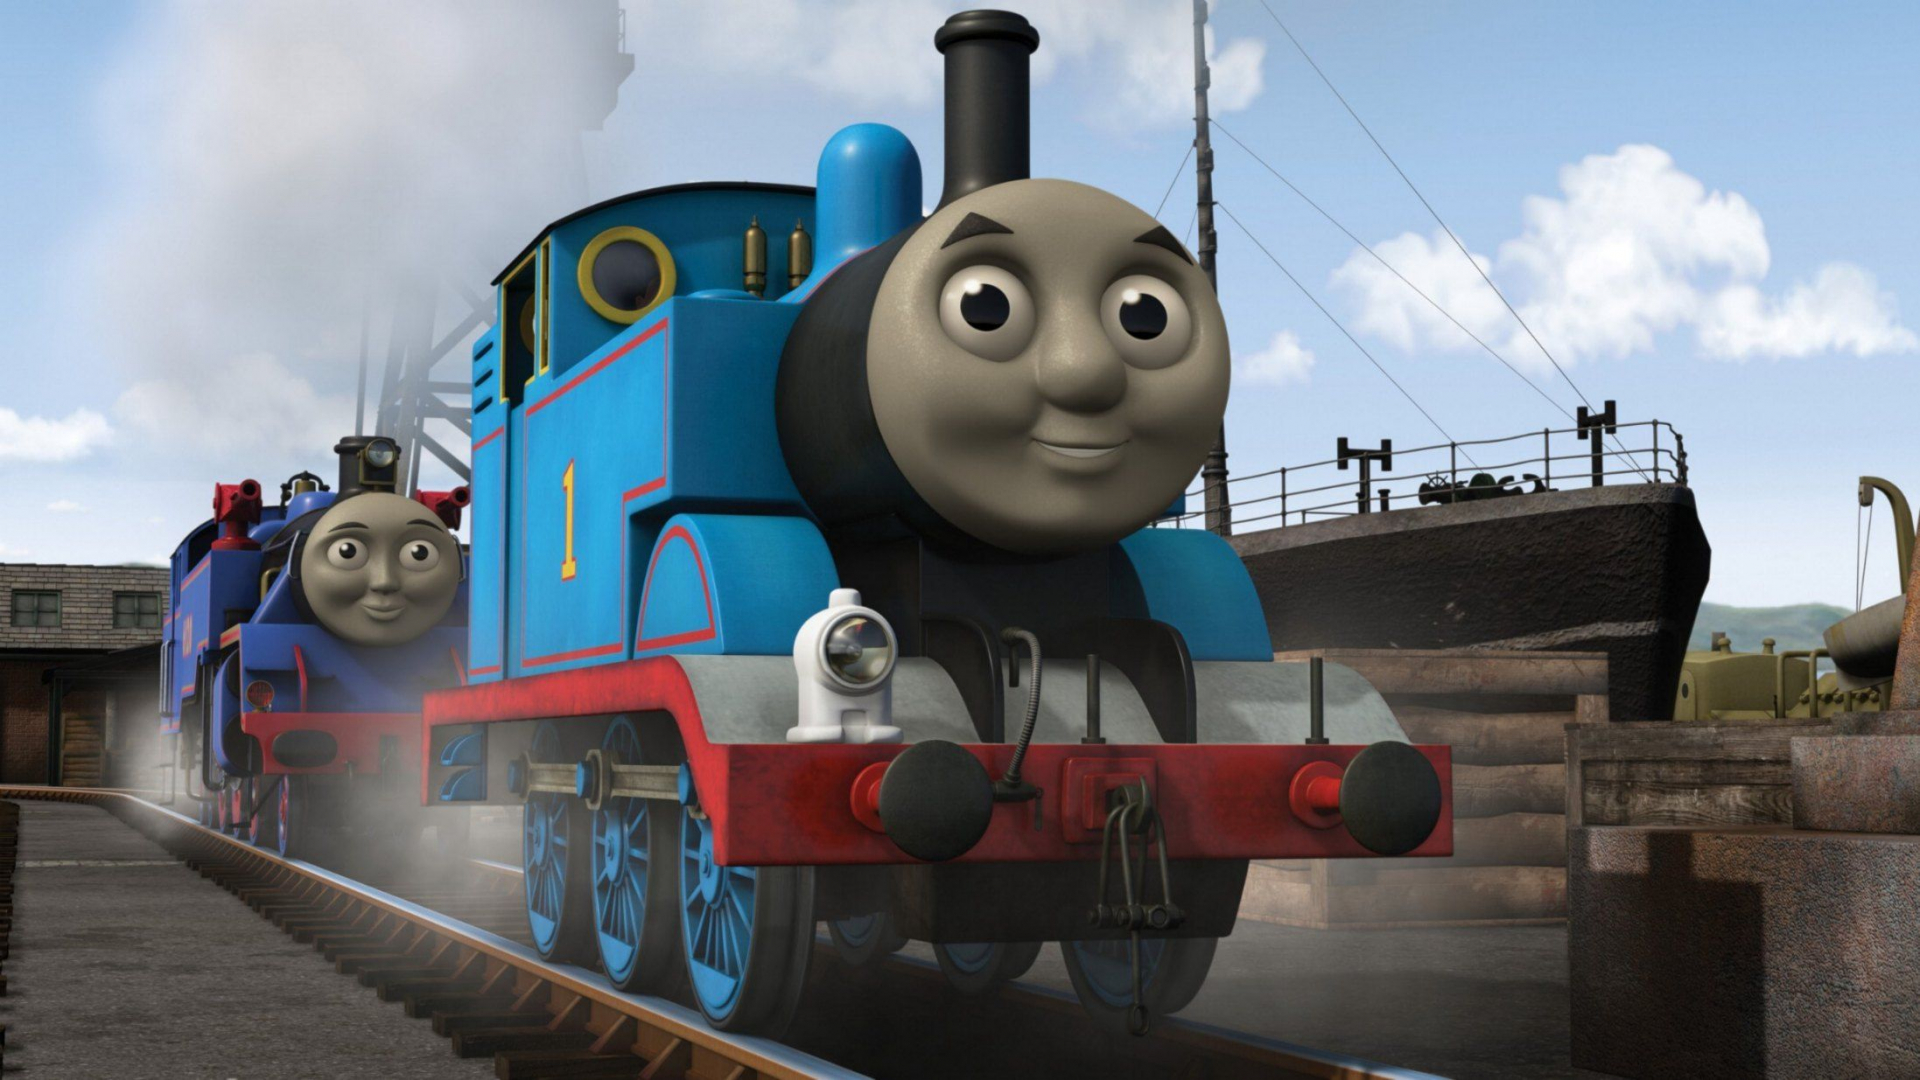 Free Download Thomas The Tank Engine Wallpapers 2194x1235 For